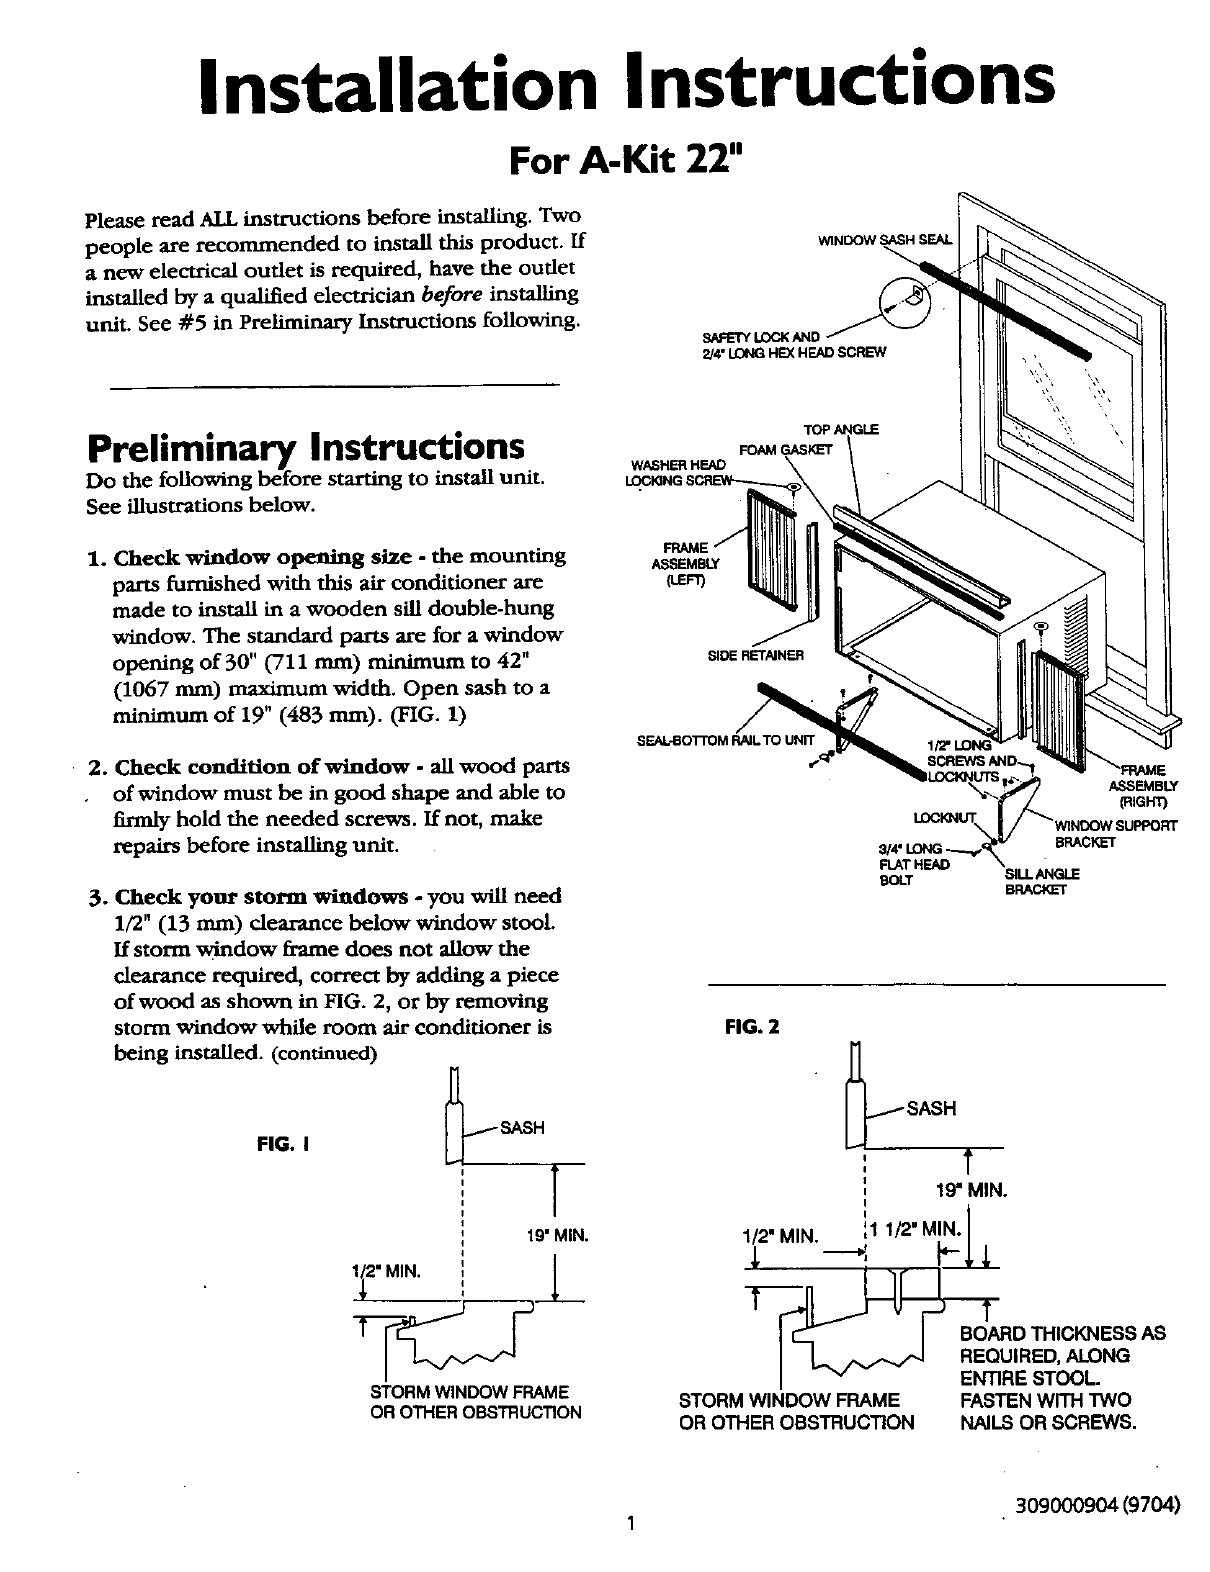 Kenmore 25370094000 User Manual Air Conditioner Manuals And Guides Wiring Diagram L0210187